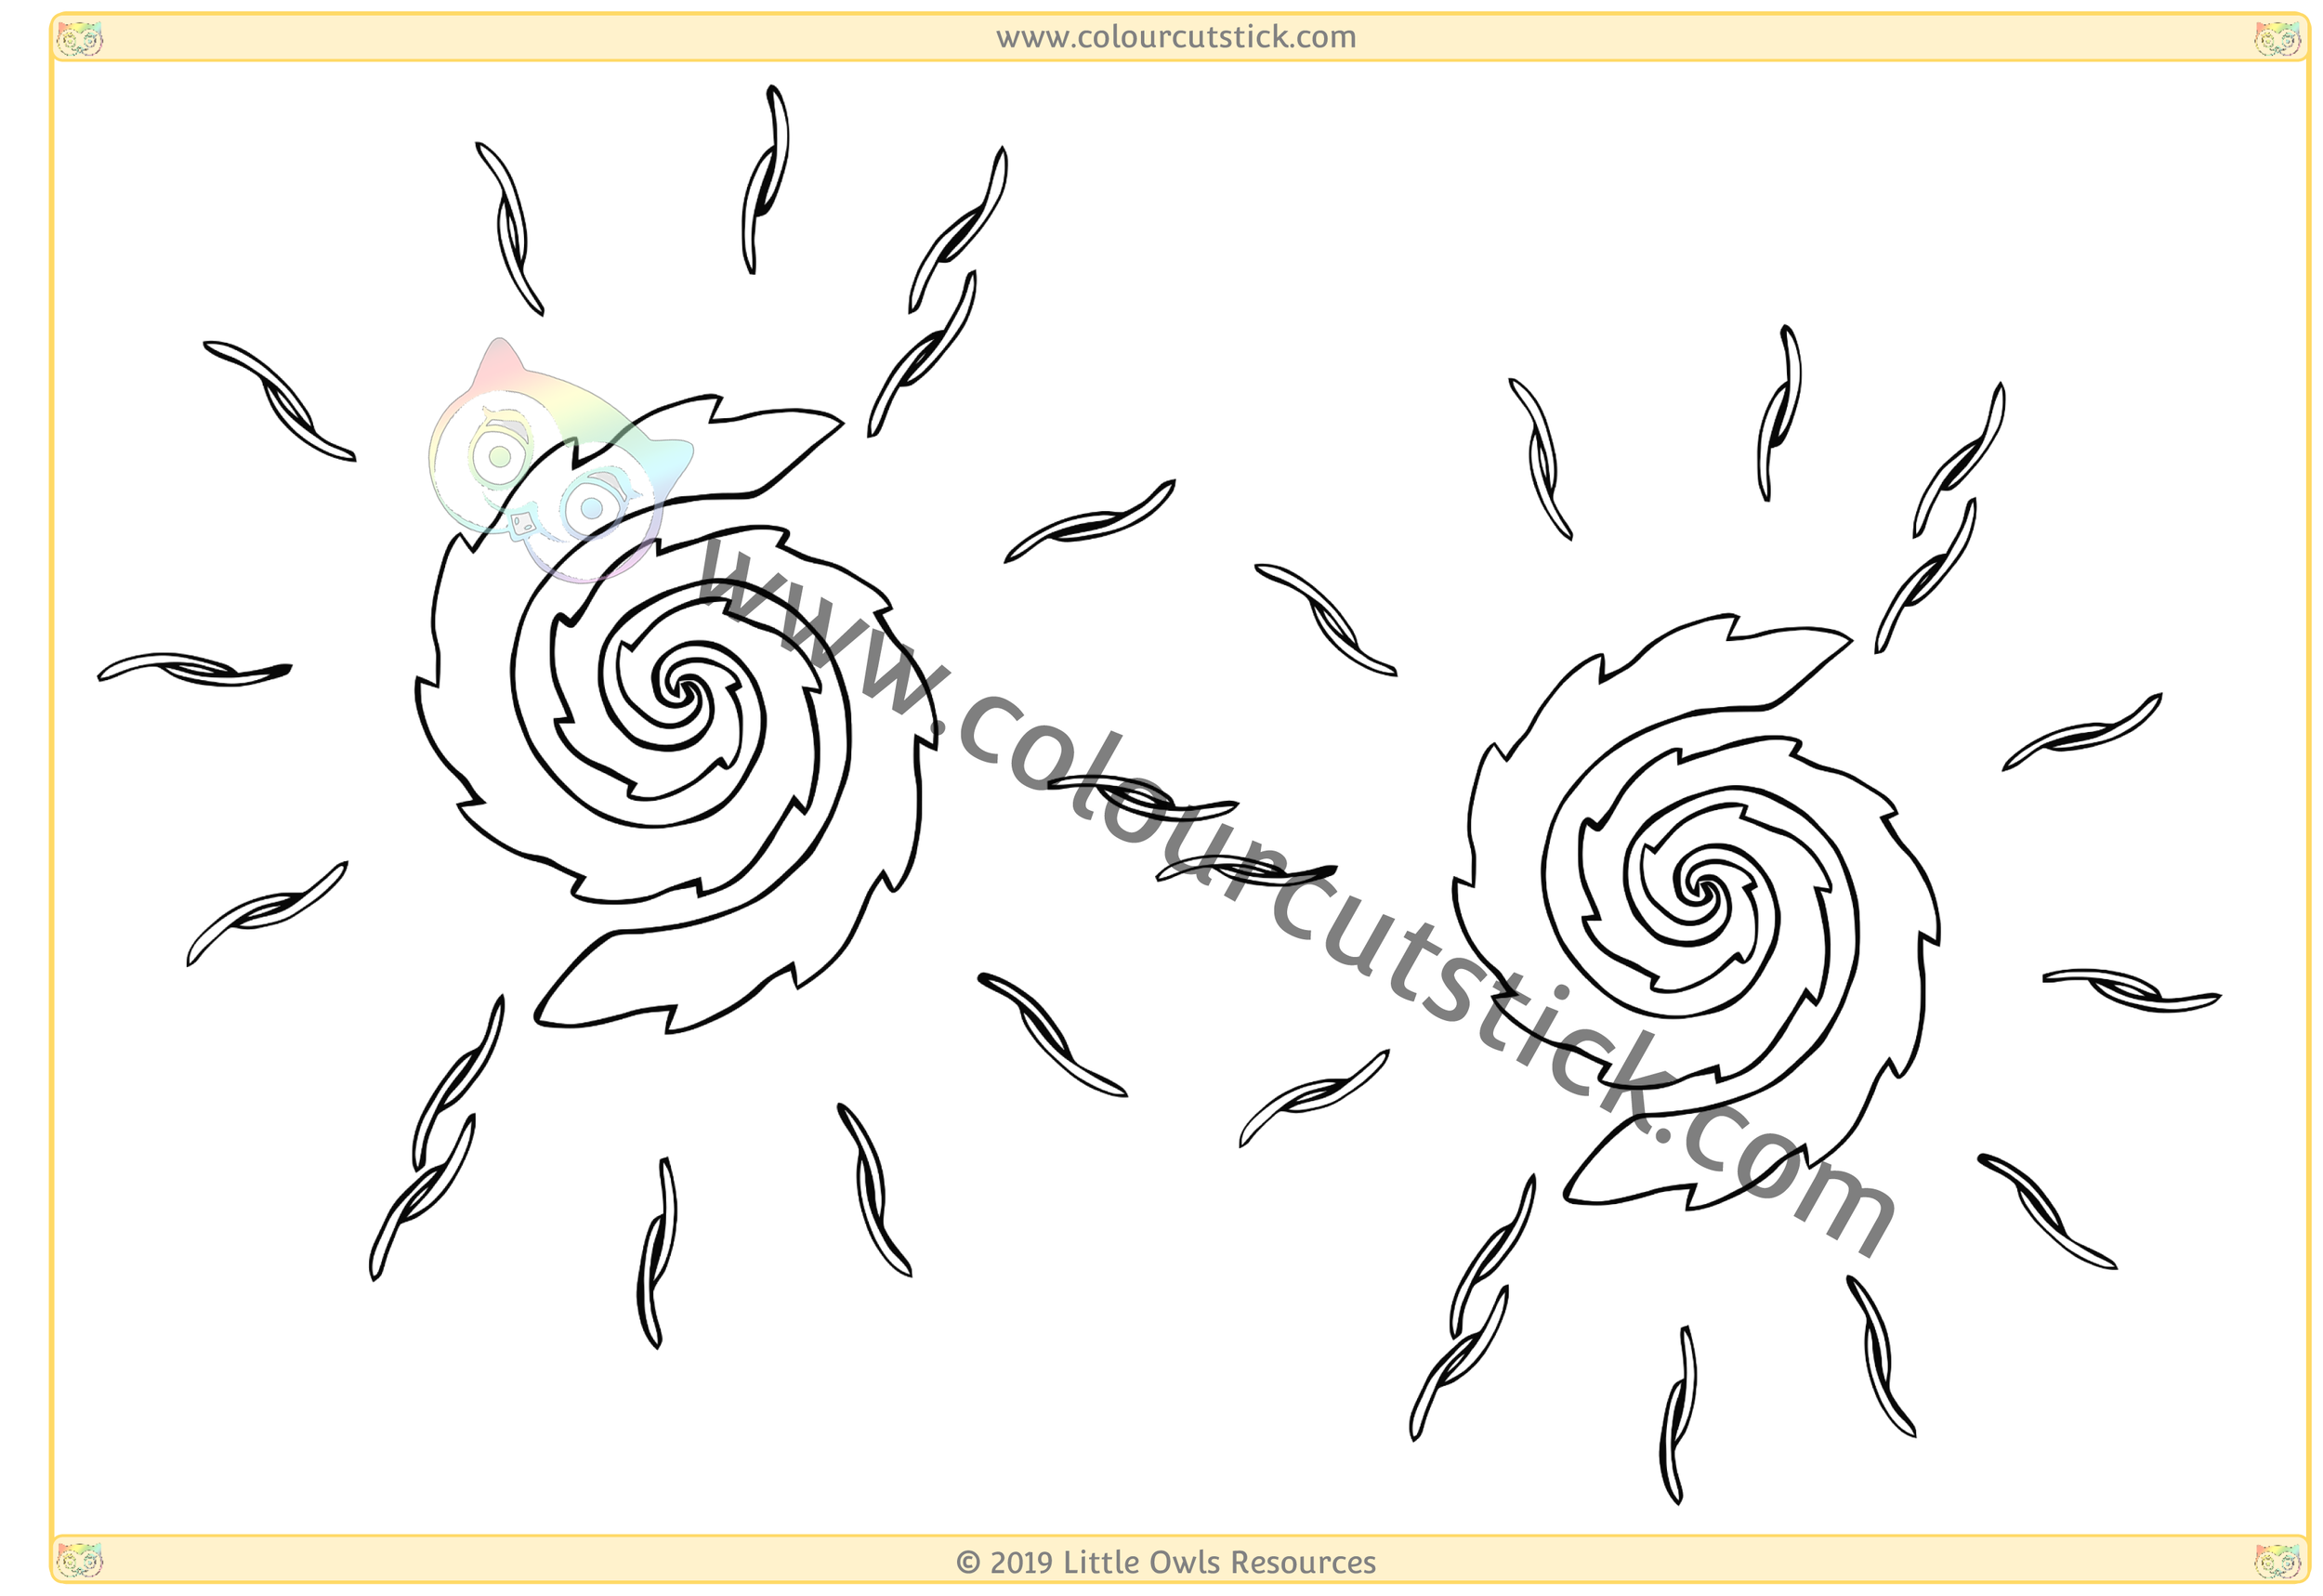 Fireworks Colouring CSS-2.png